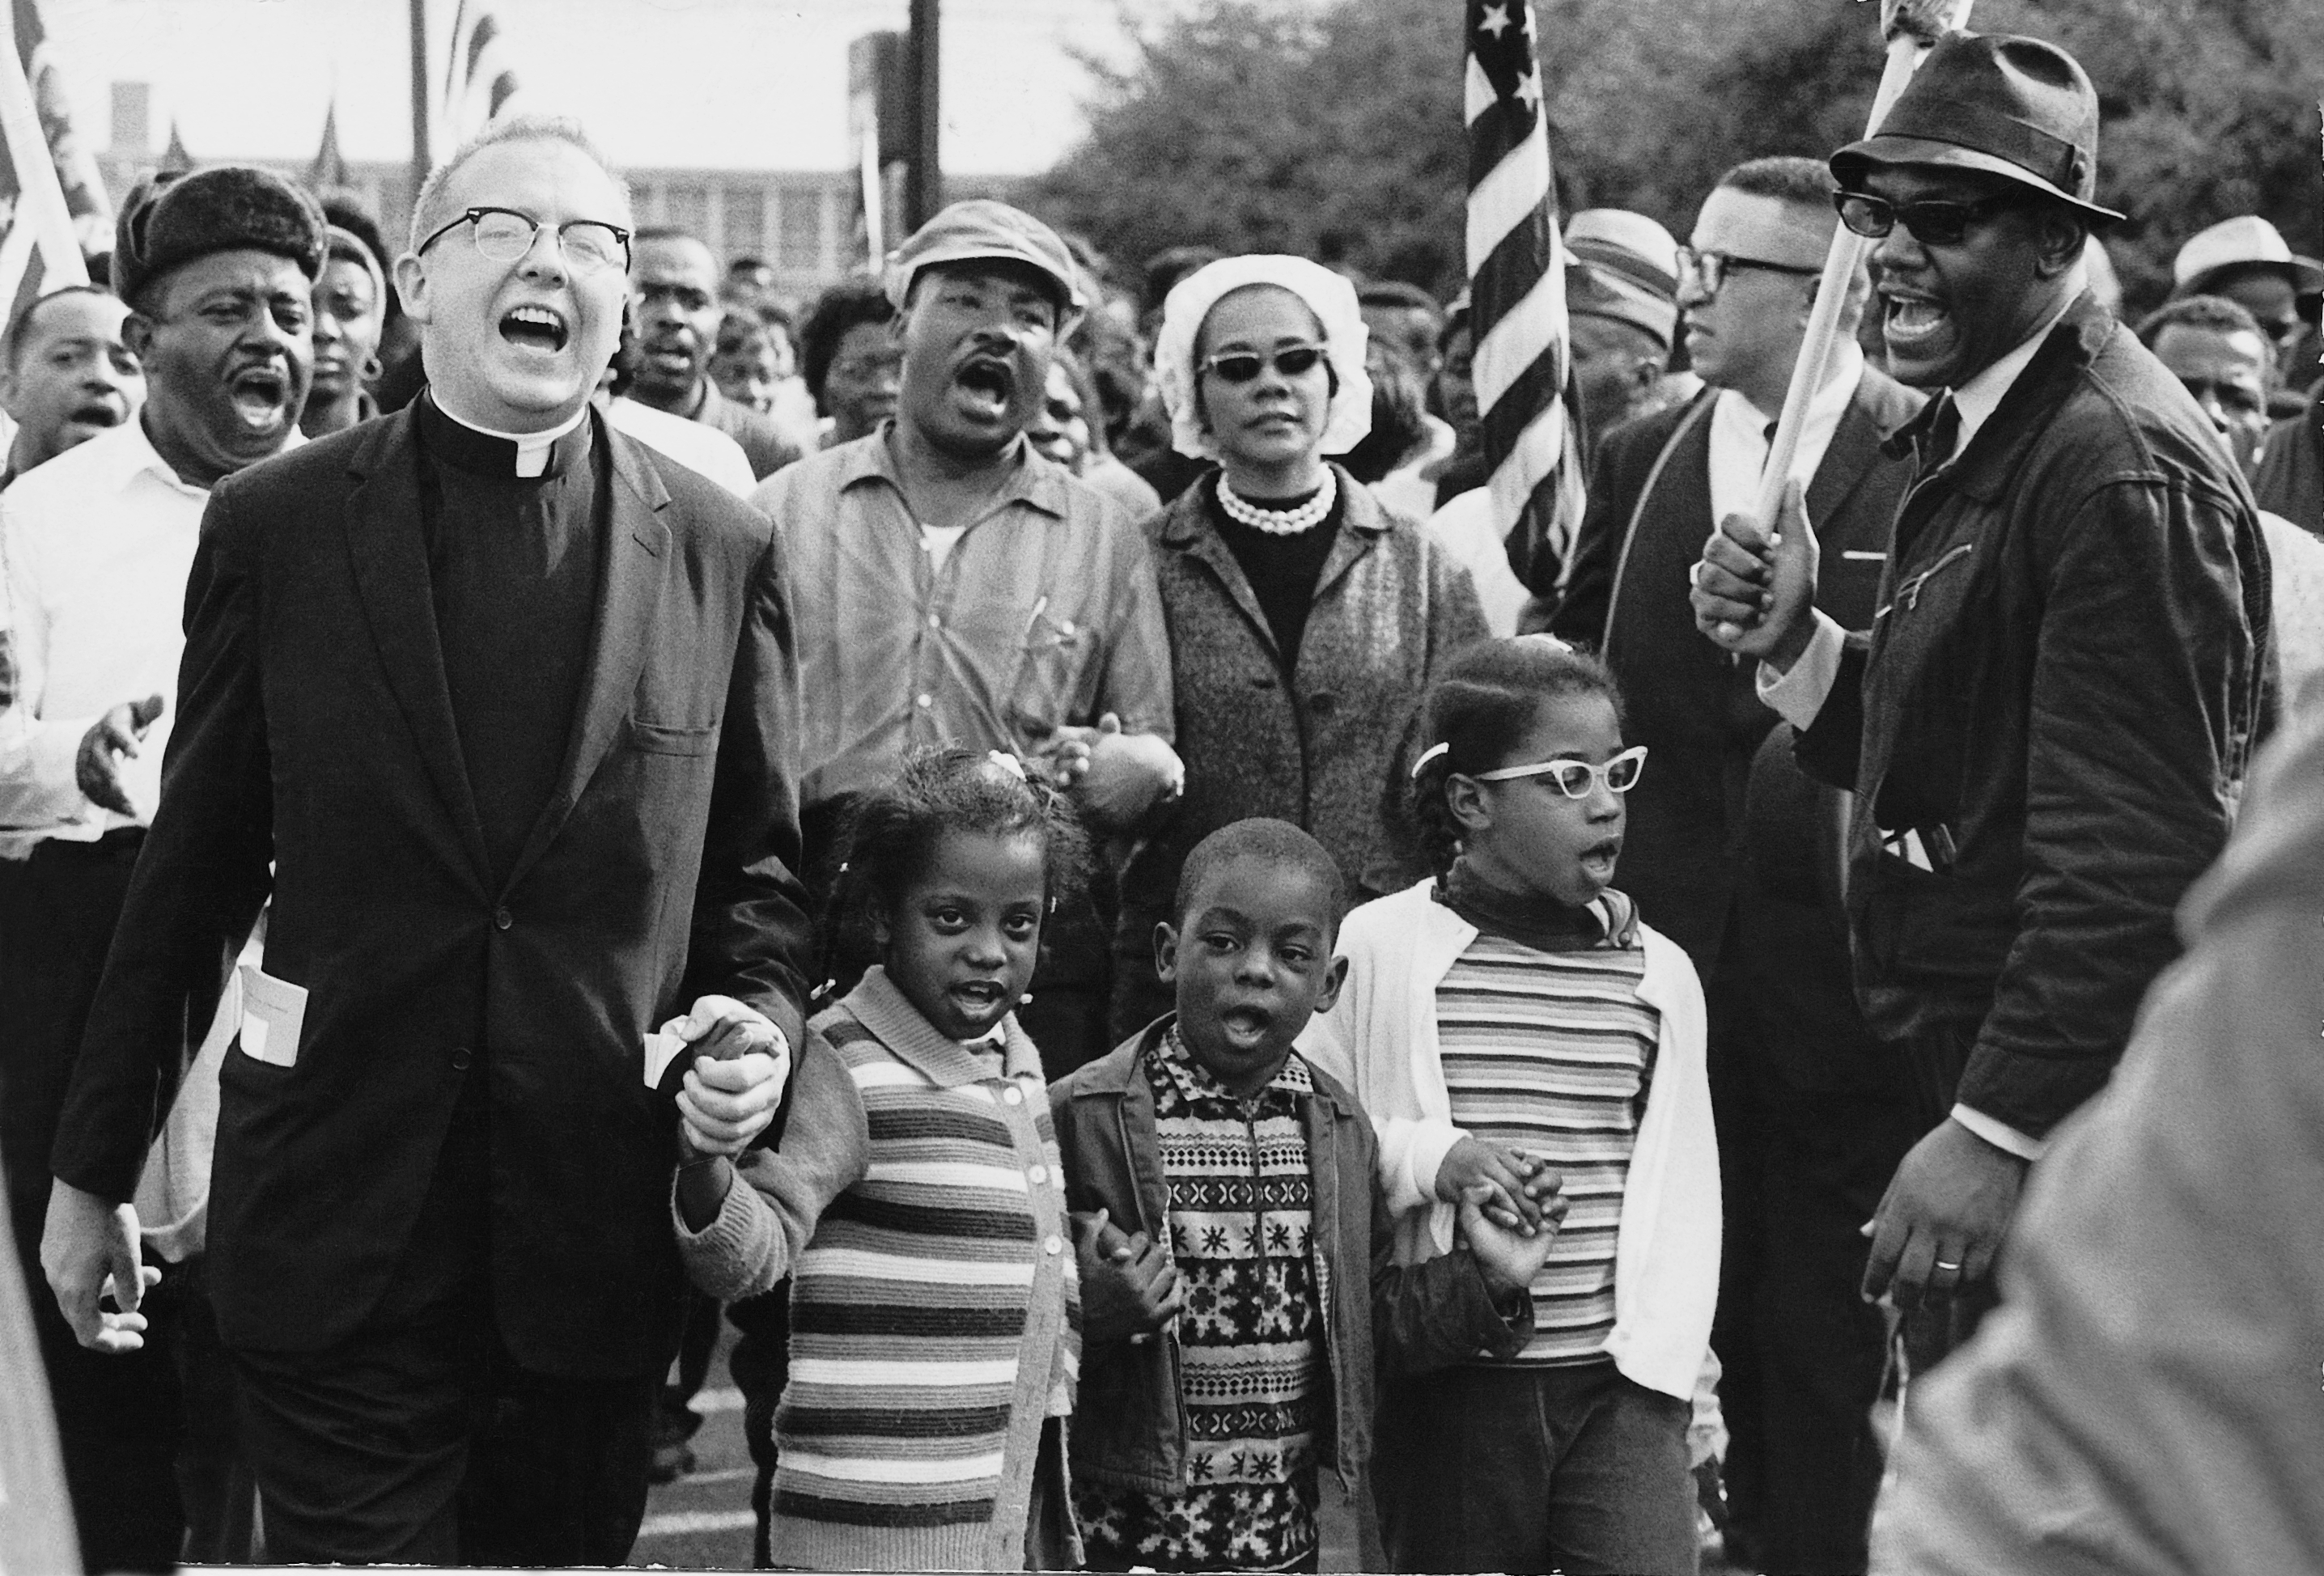 Photo of Rev. King, the Abernathy children and others marching to